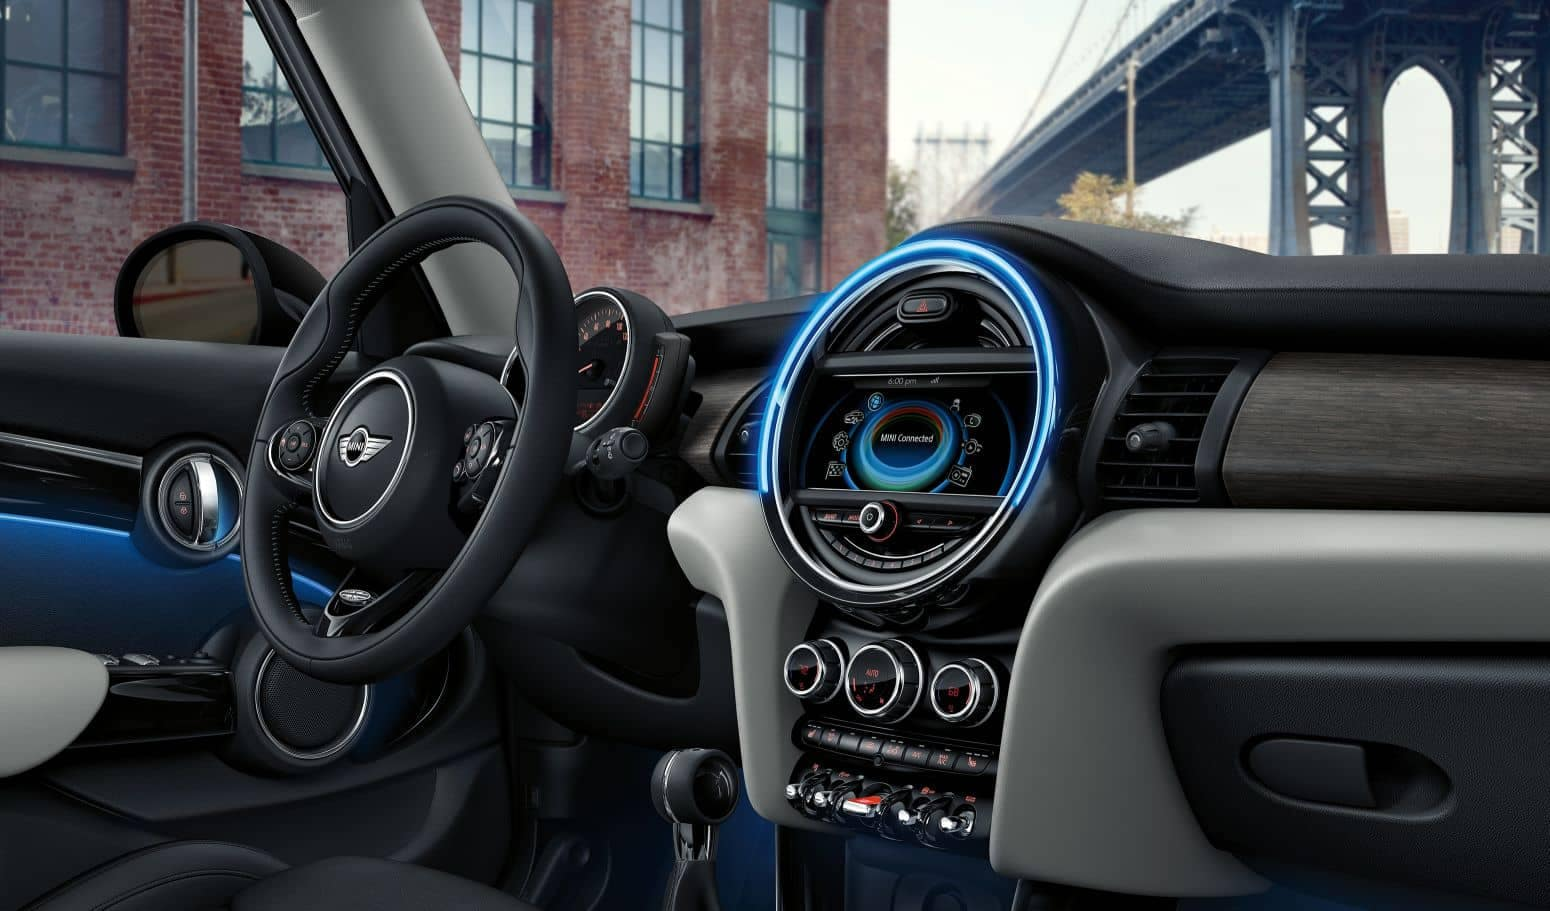 2018 MINI Hardtop 2 door dashboard